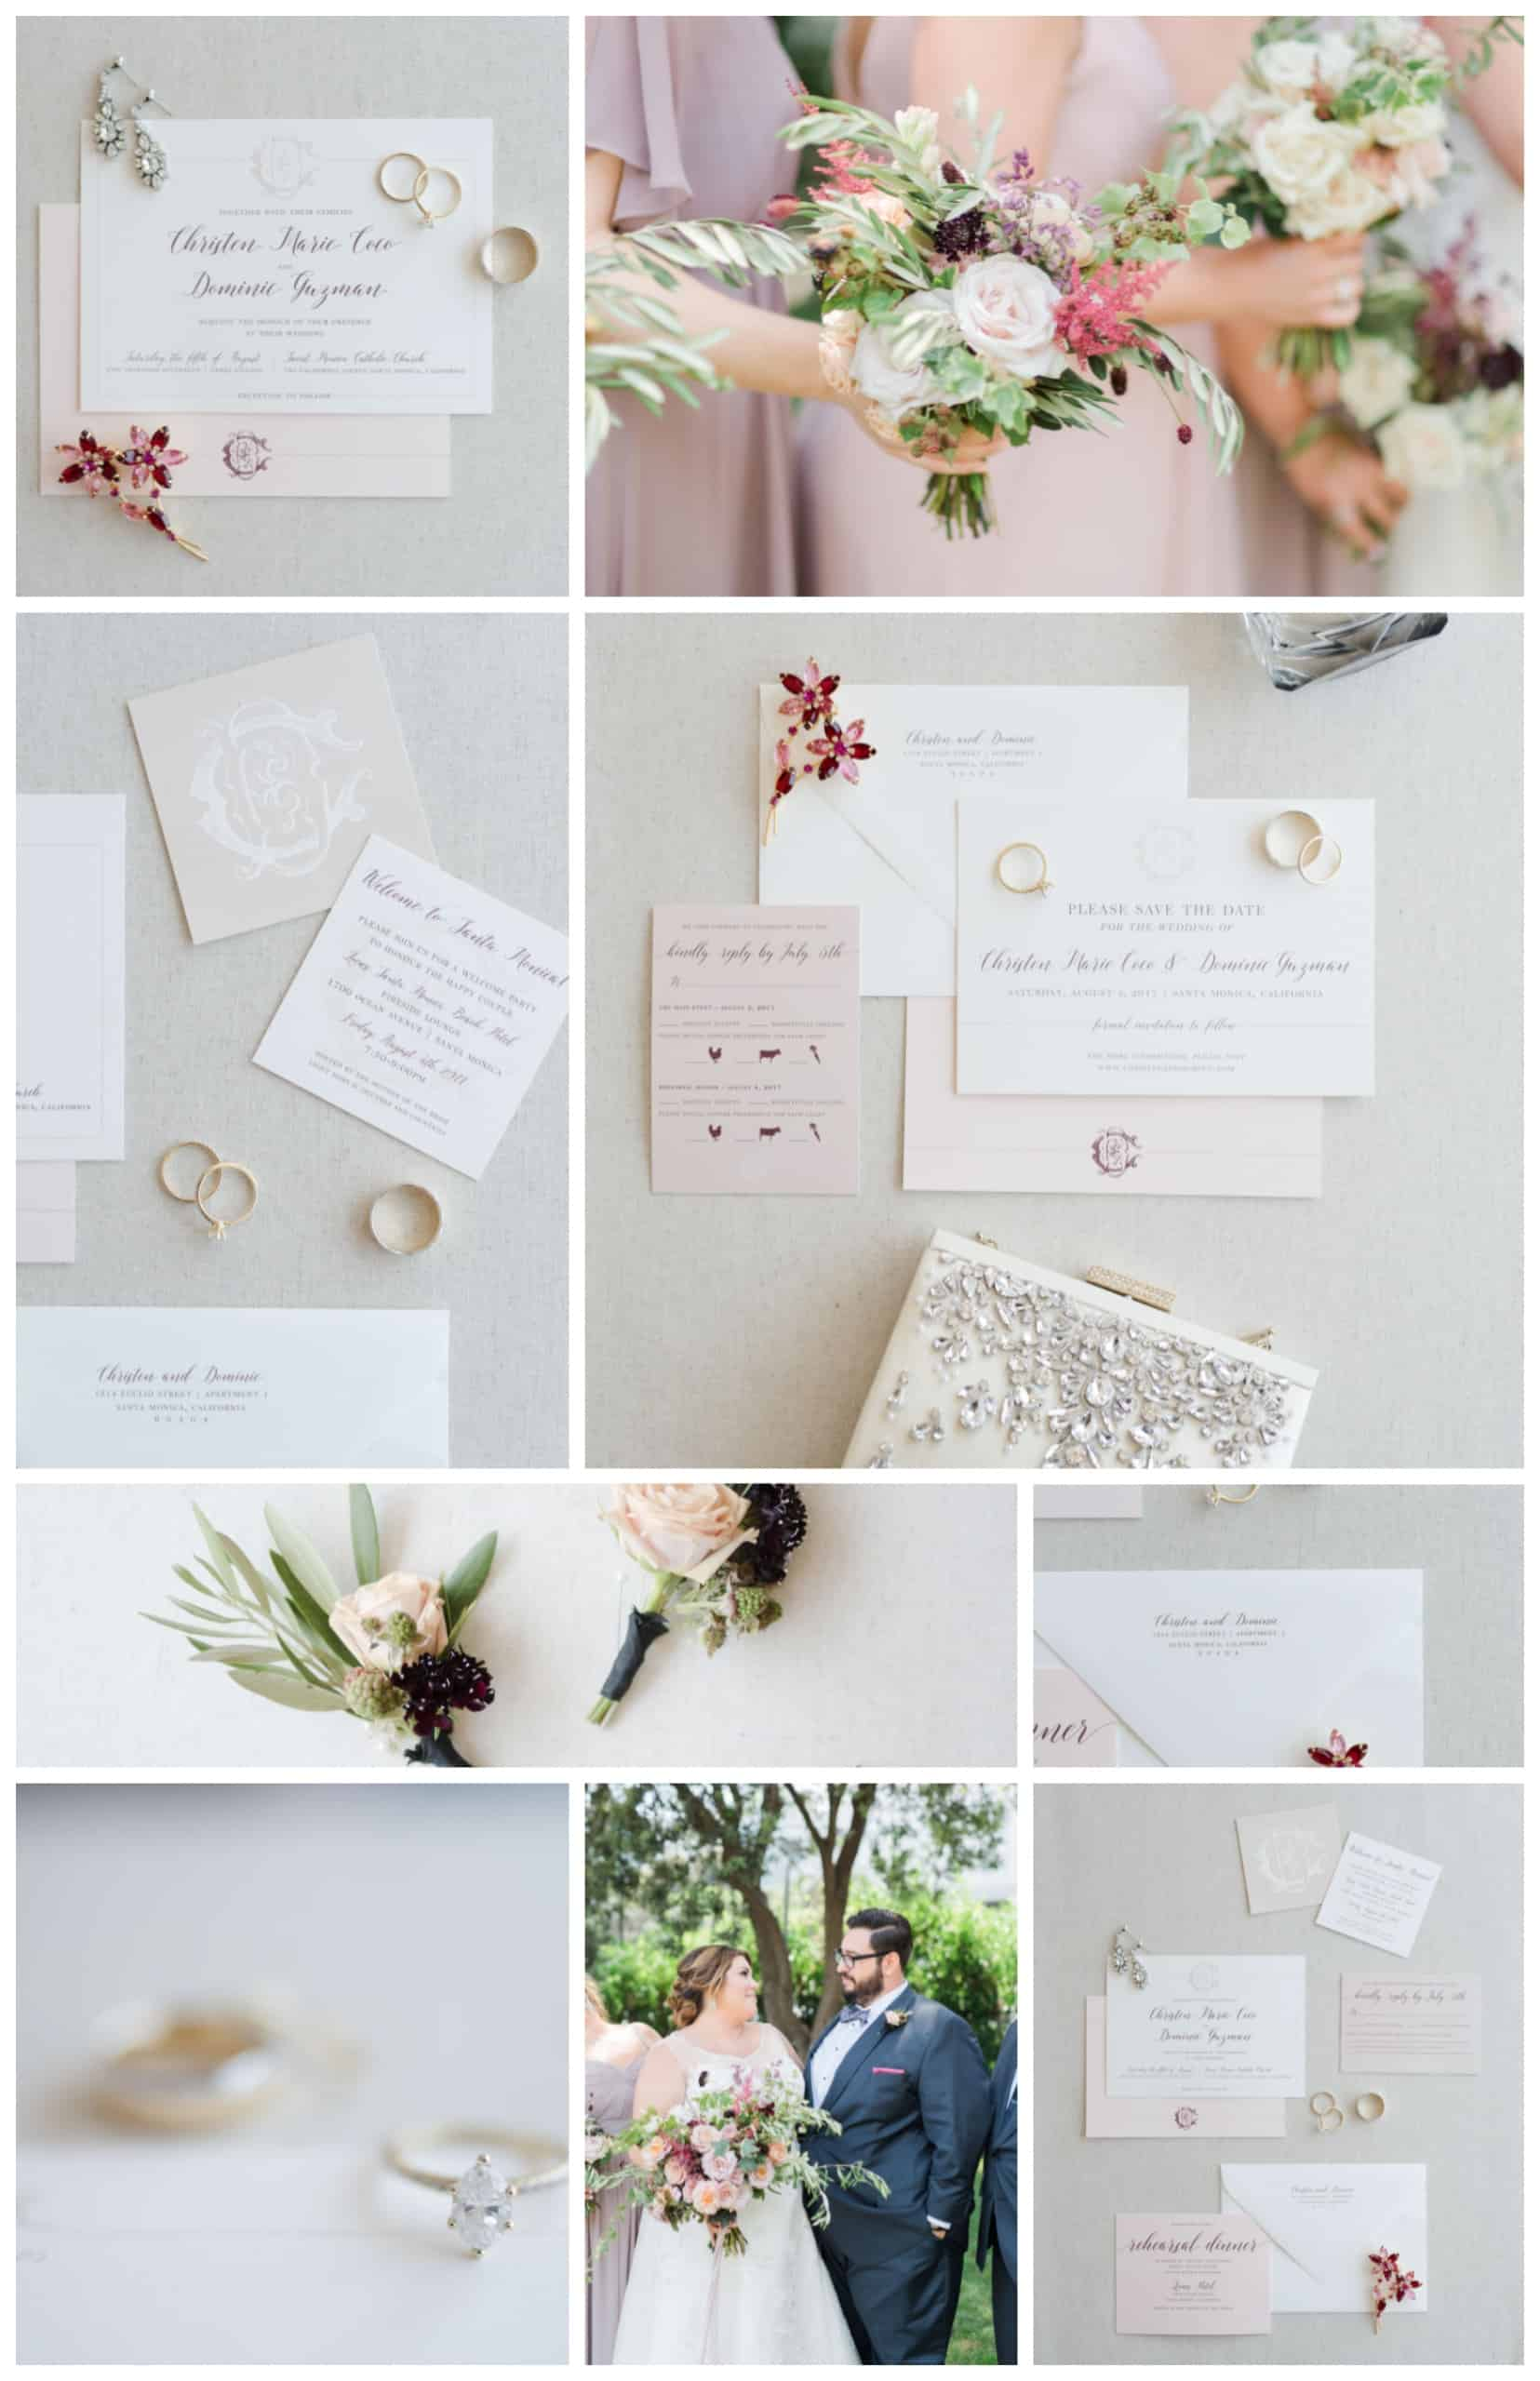 Blush and Burgundy Monogram California Wedding